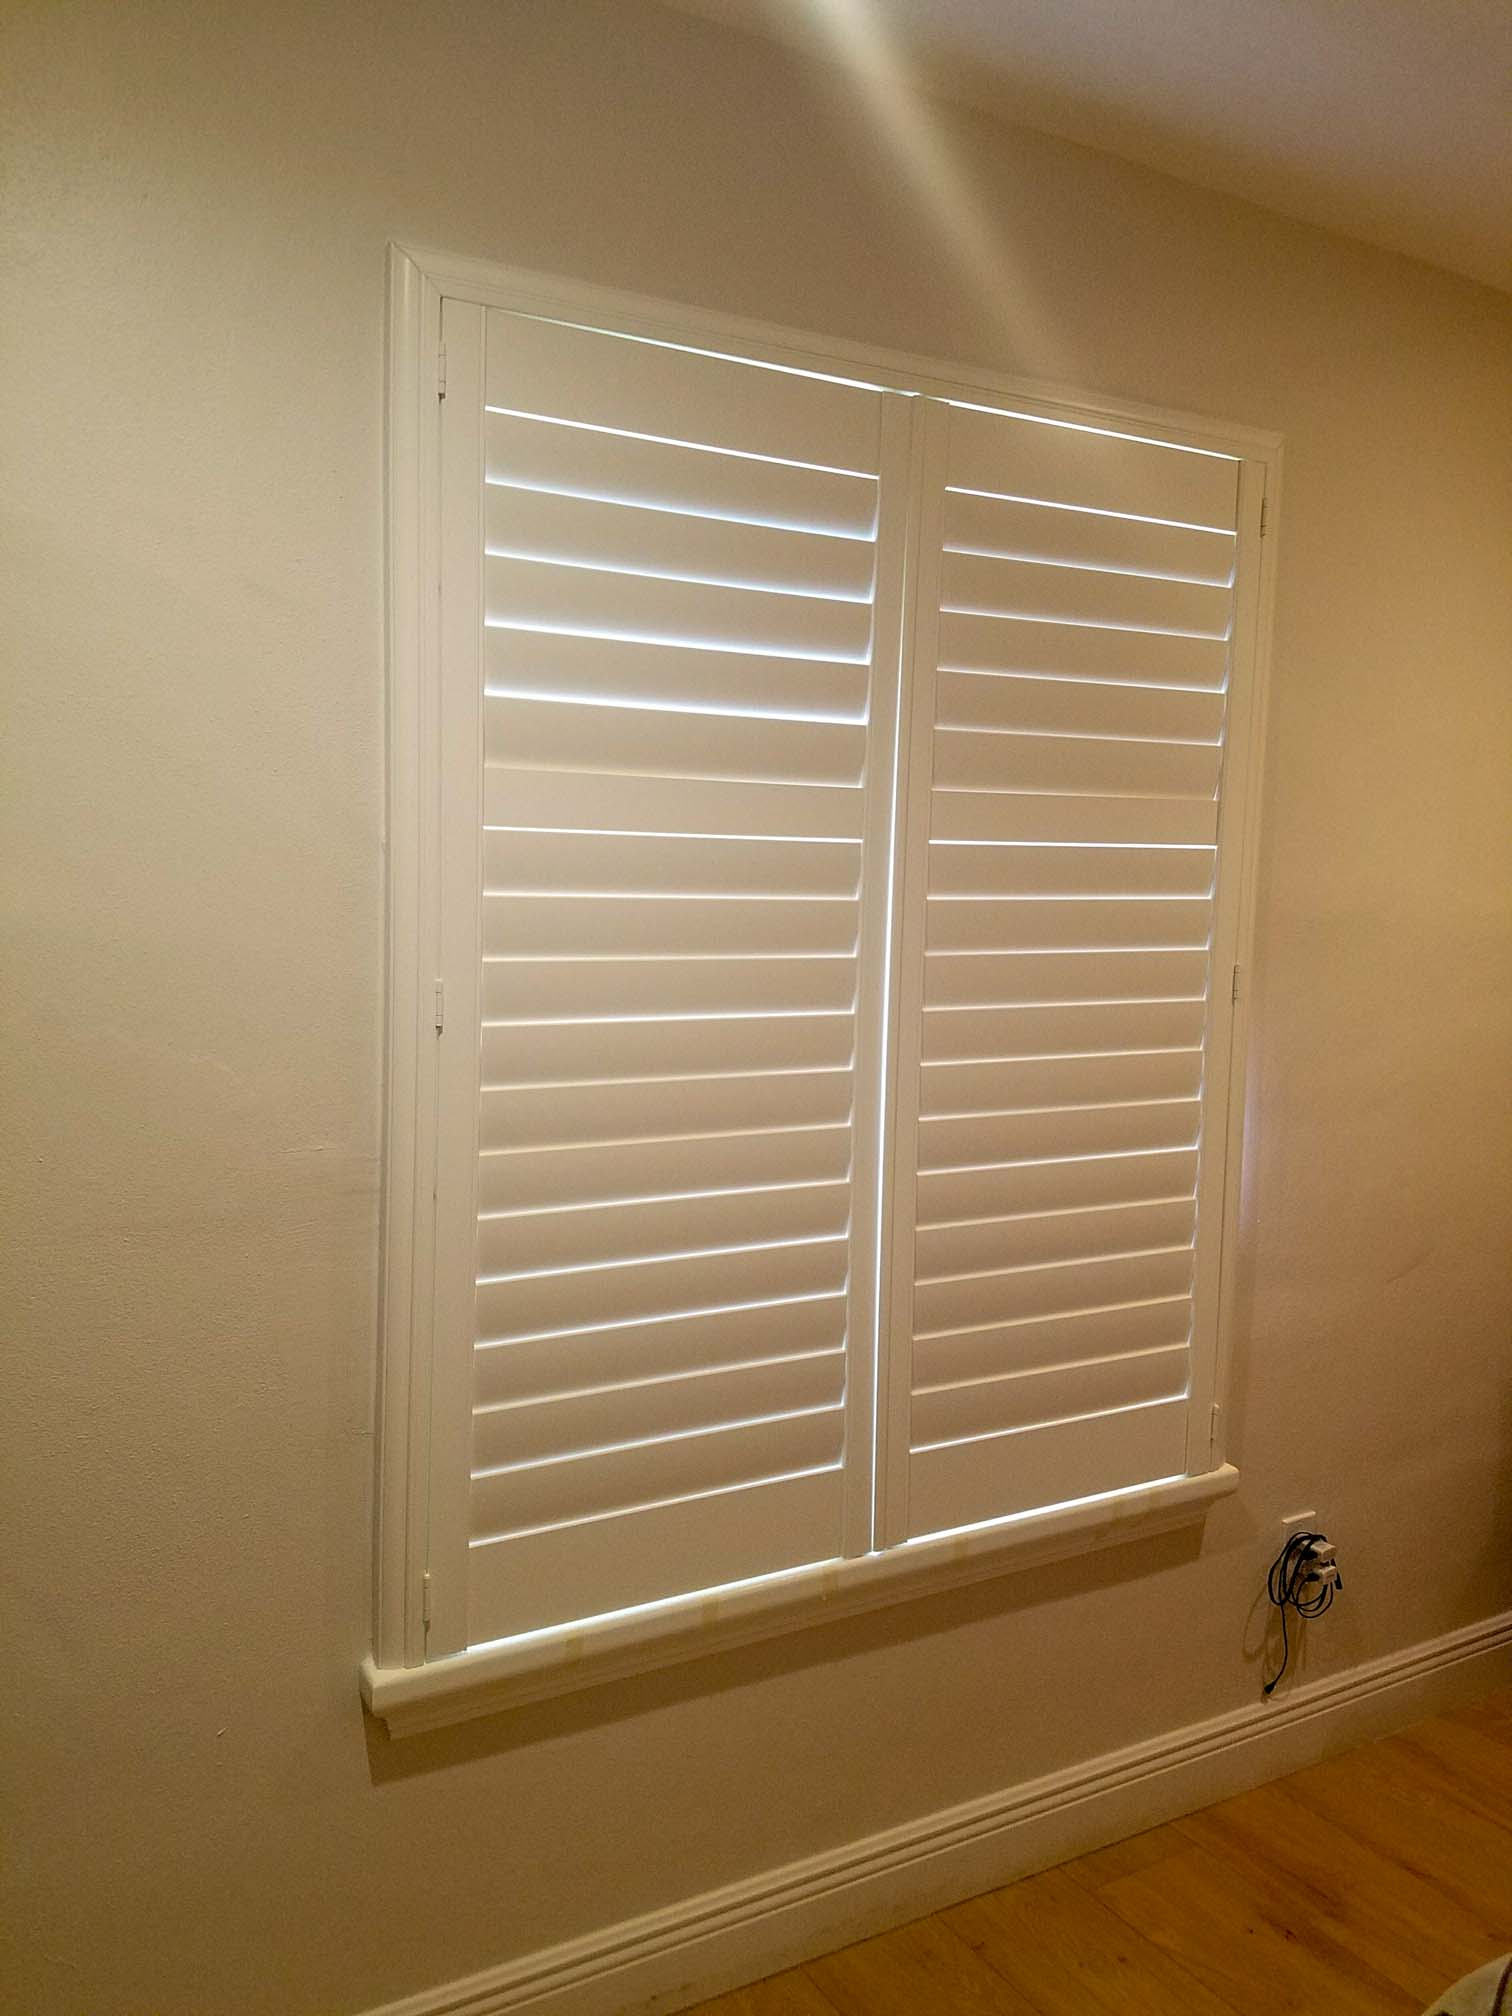 plantation shutters gallery PLANTATION SHUTTERS GALLERY 20180322 114028